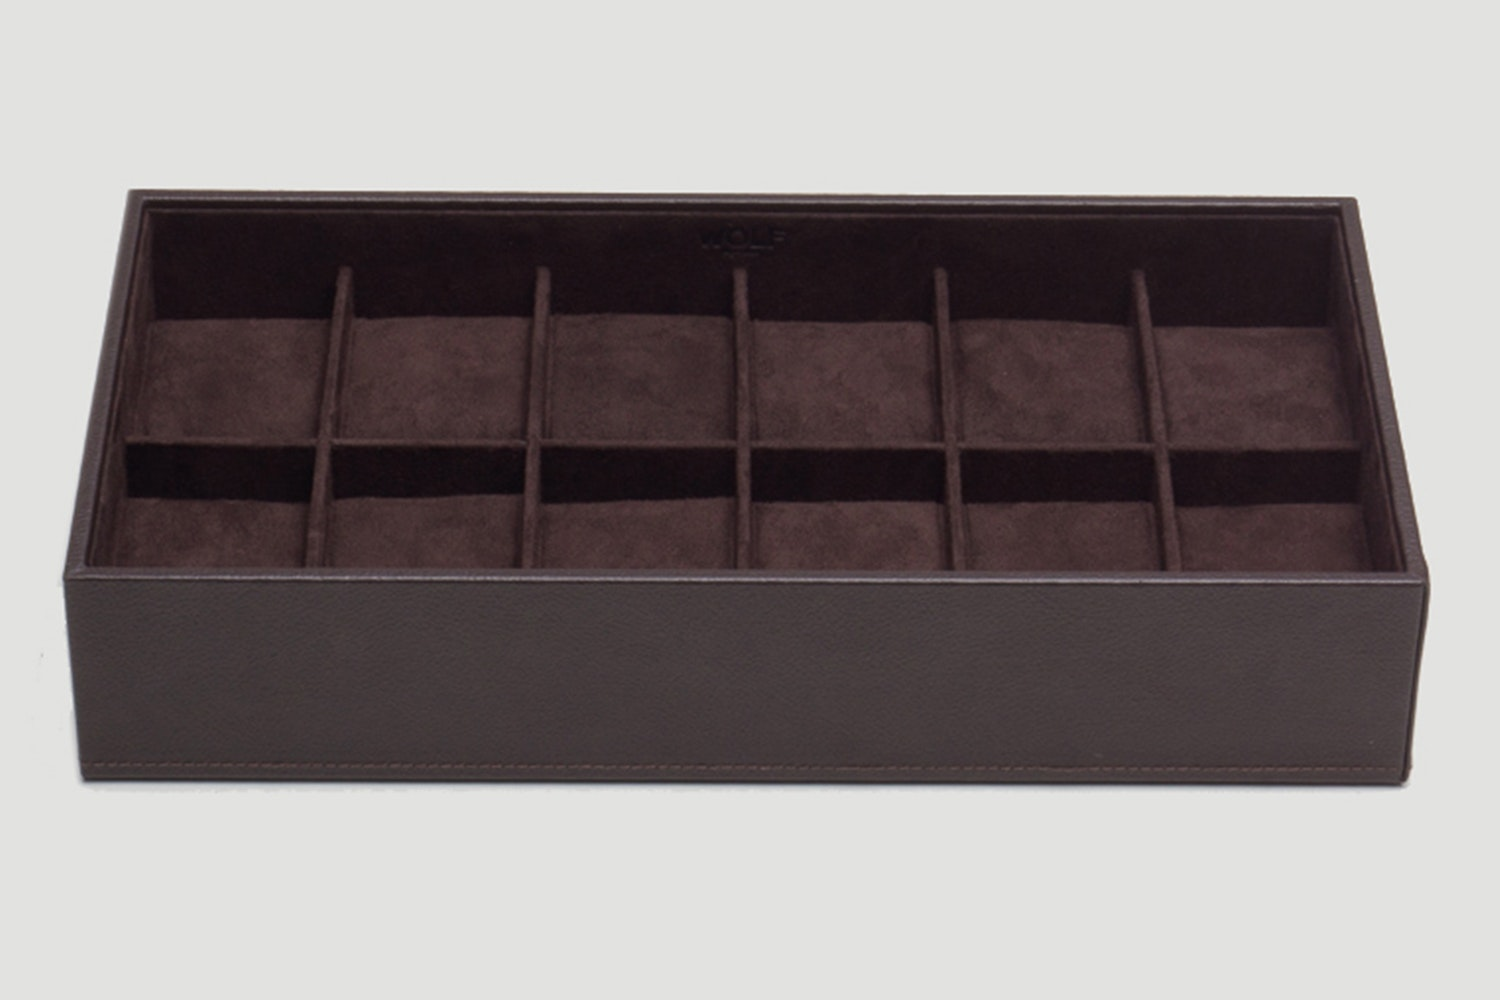 12-Piece Tray, Brown